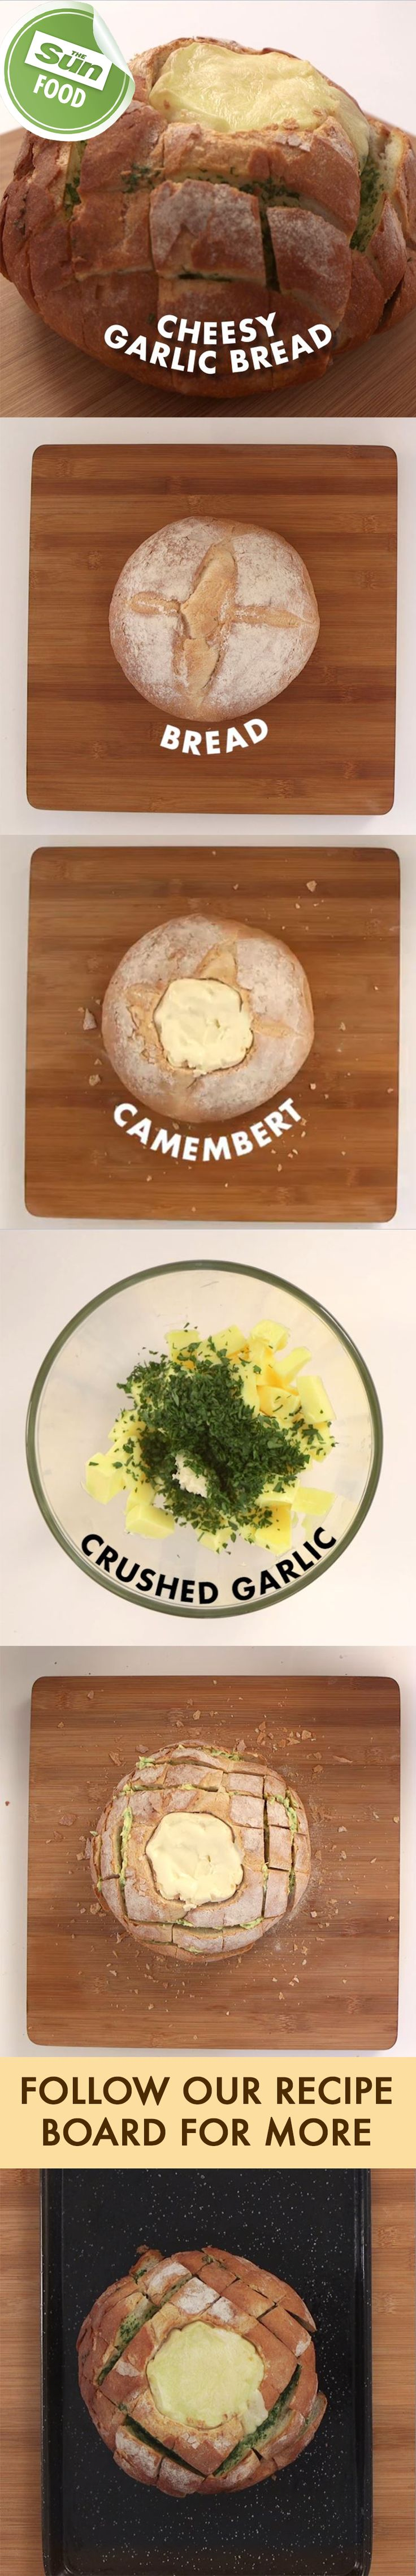 Rip and share garlic bread with camembert recipe